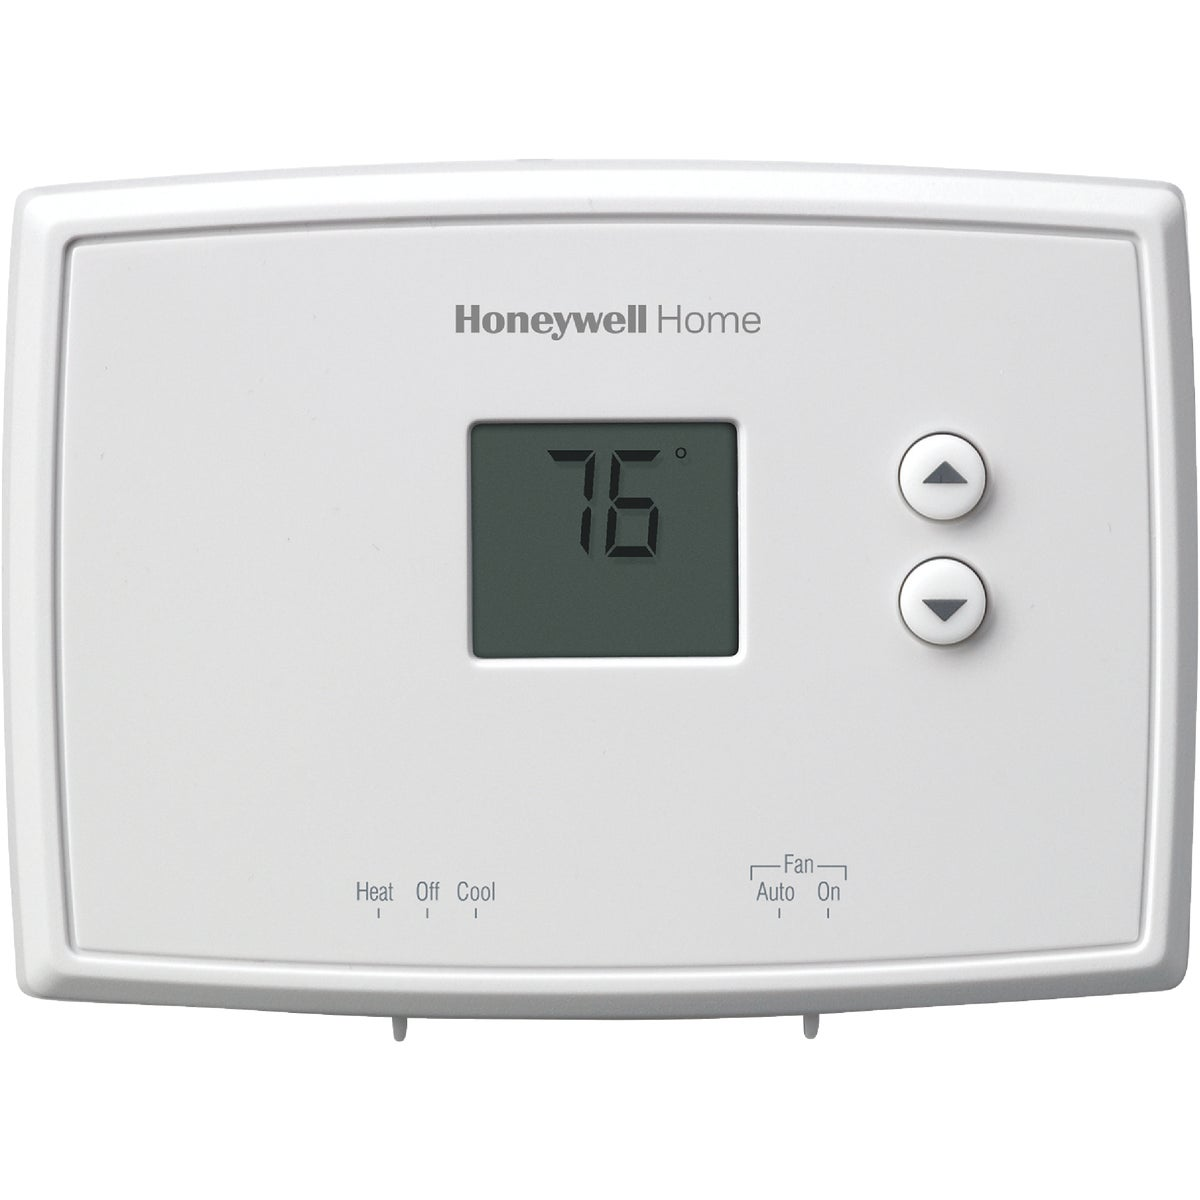 BASIC DIGITAL THERMOSTAT - RTH111B1016 by Honeywell Internatl